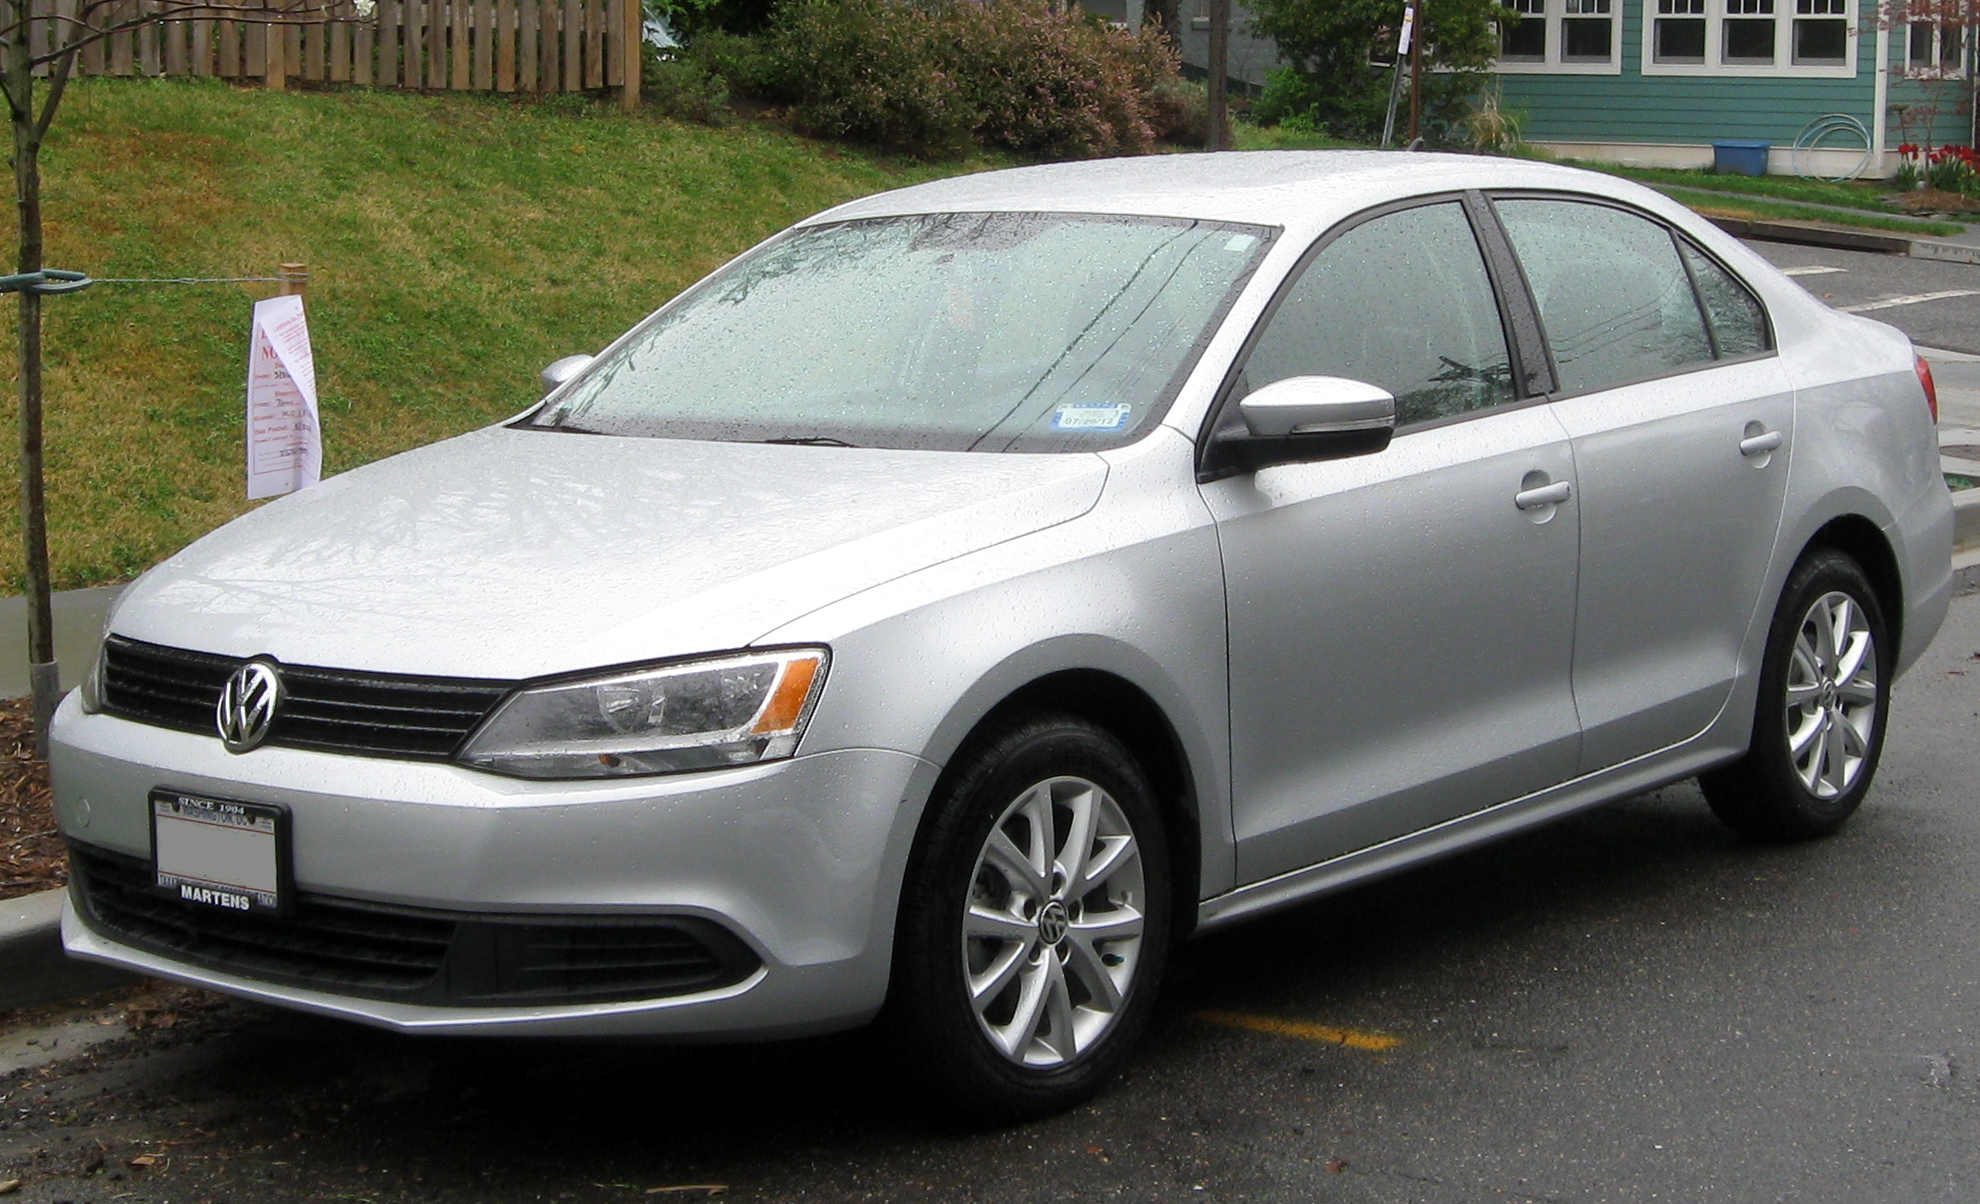 CANADA SPECIFICALLY) Is the 2011-2015 Volkswagen Jetta reliable? Are